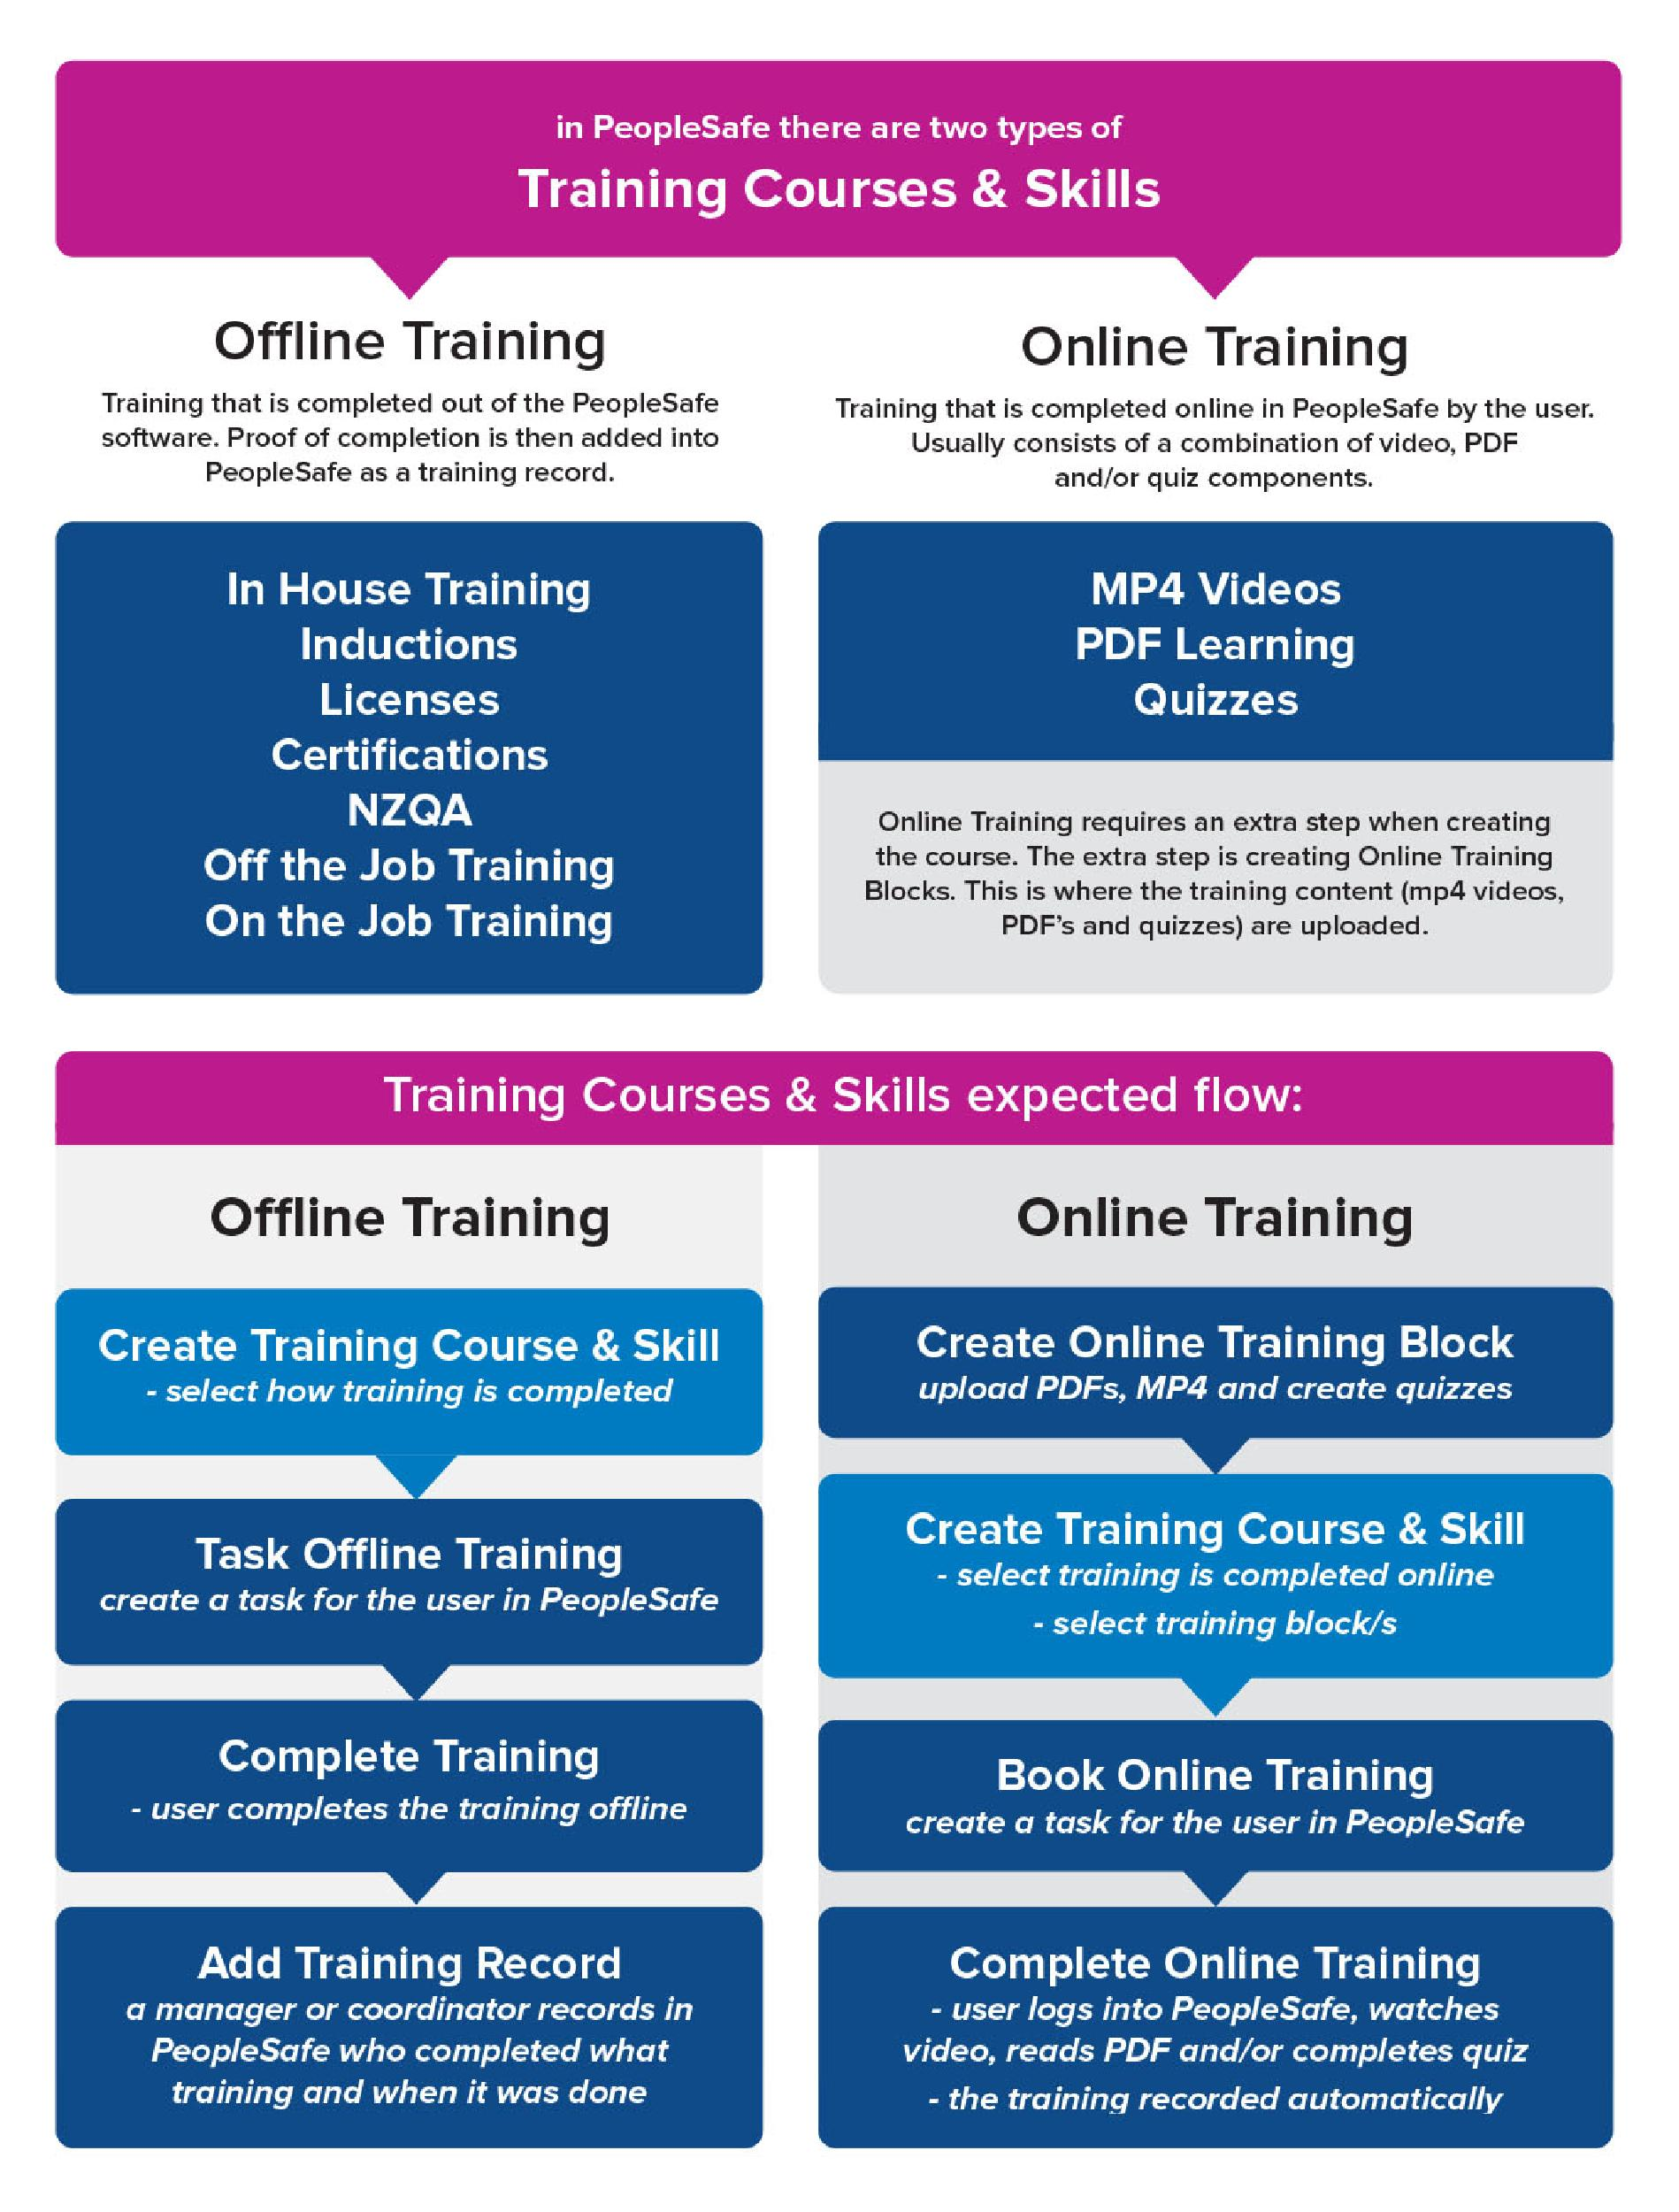 an overview of training skills peoplesafe help centre nzqa qualifications on the job training in house training vetting checks certifications online learning or anything that you require your workers